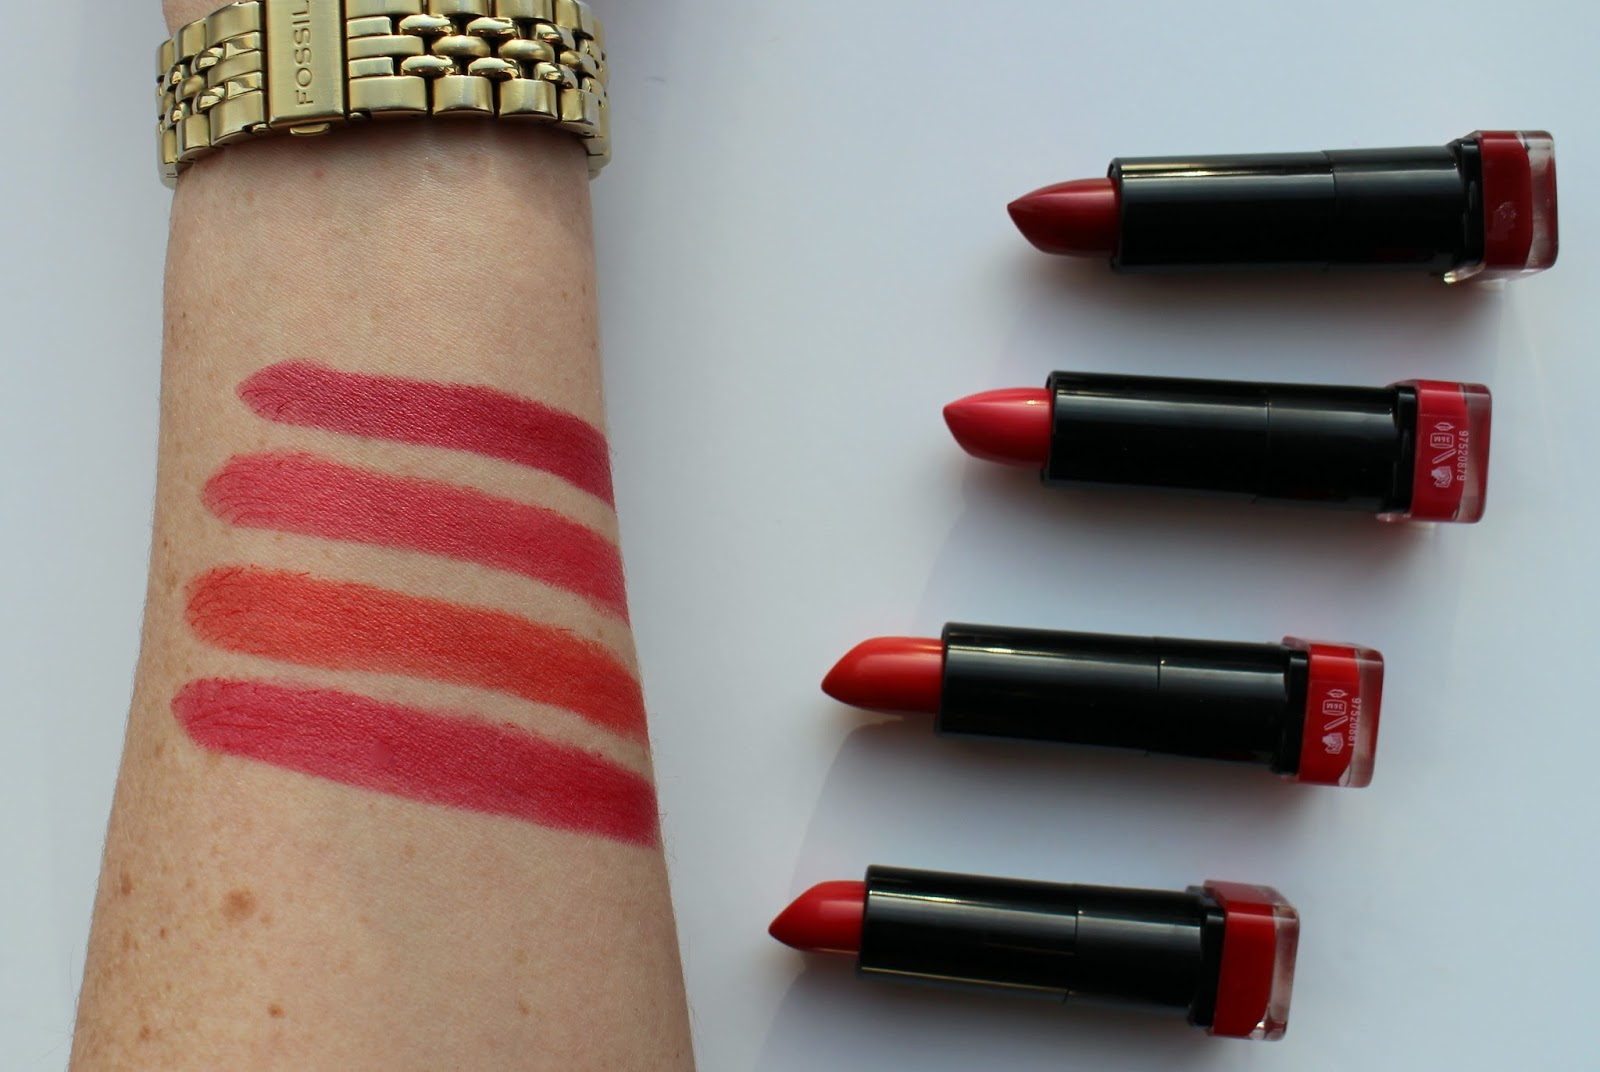 Max Factor Marilyn Monroe Lipsticks: Review & Swatches   Strawberry ...